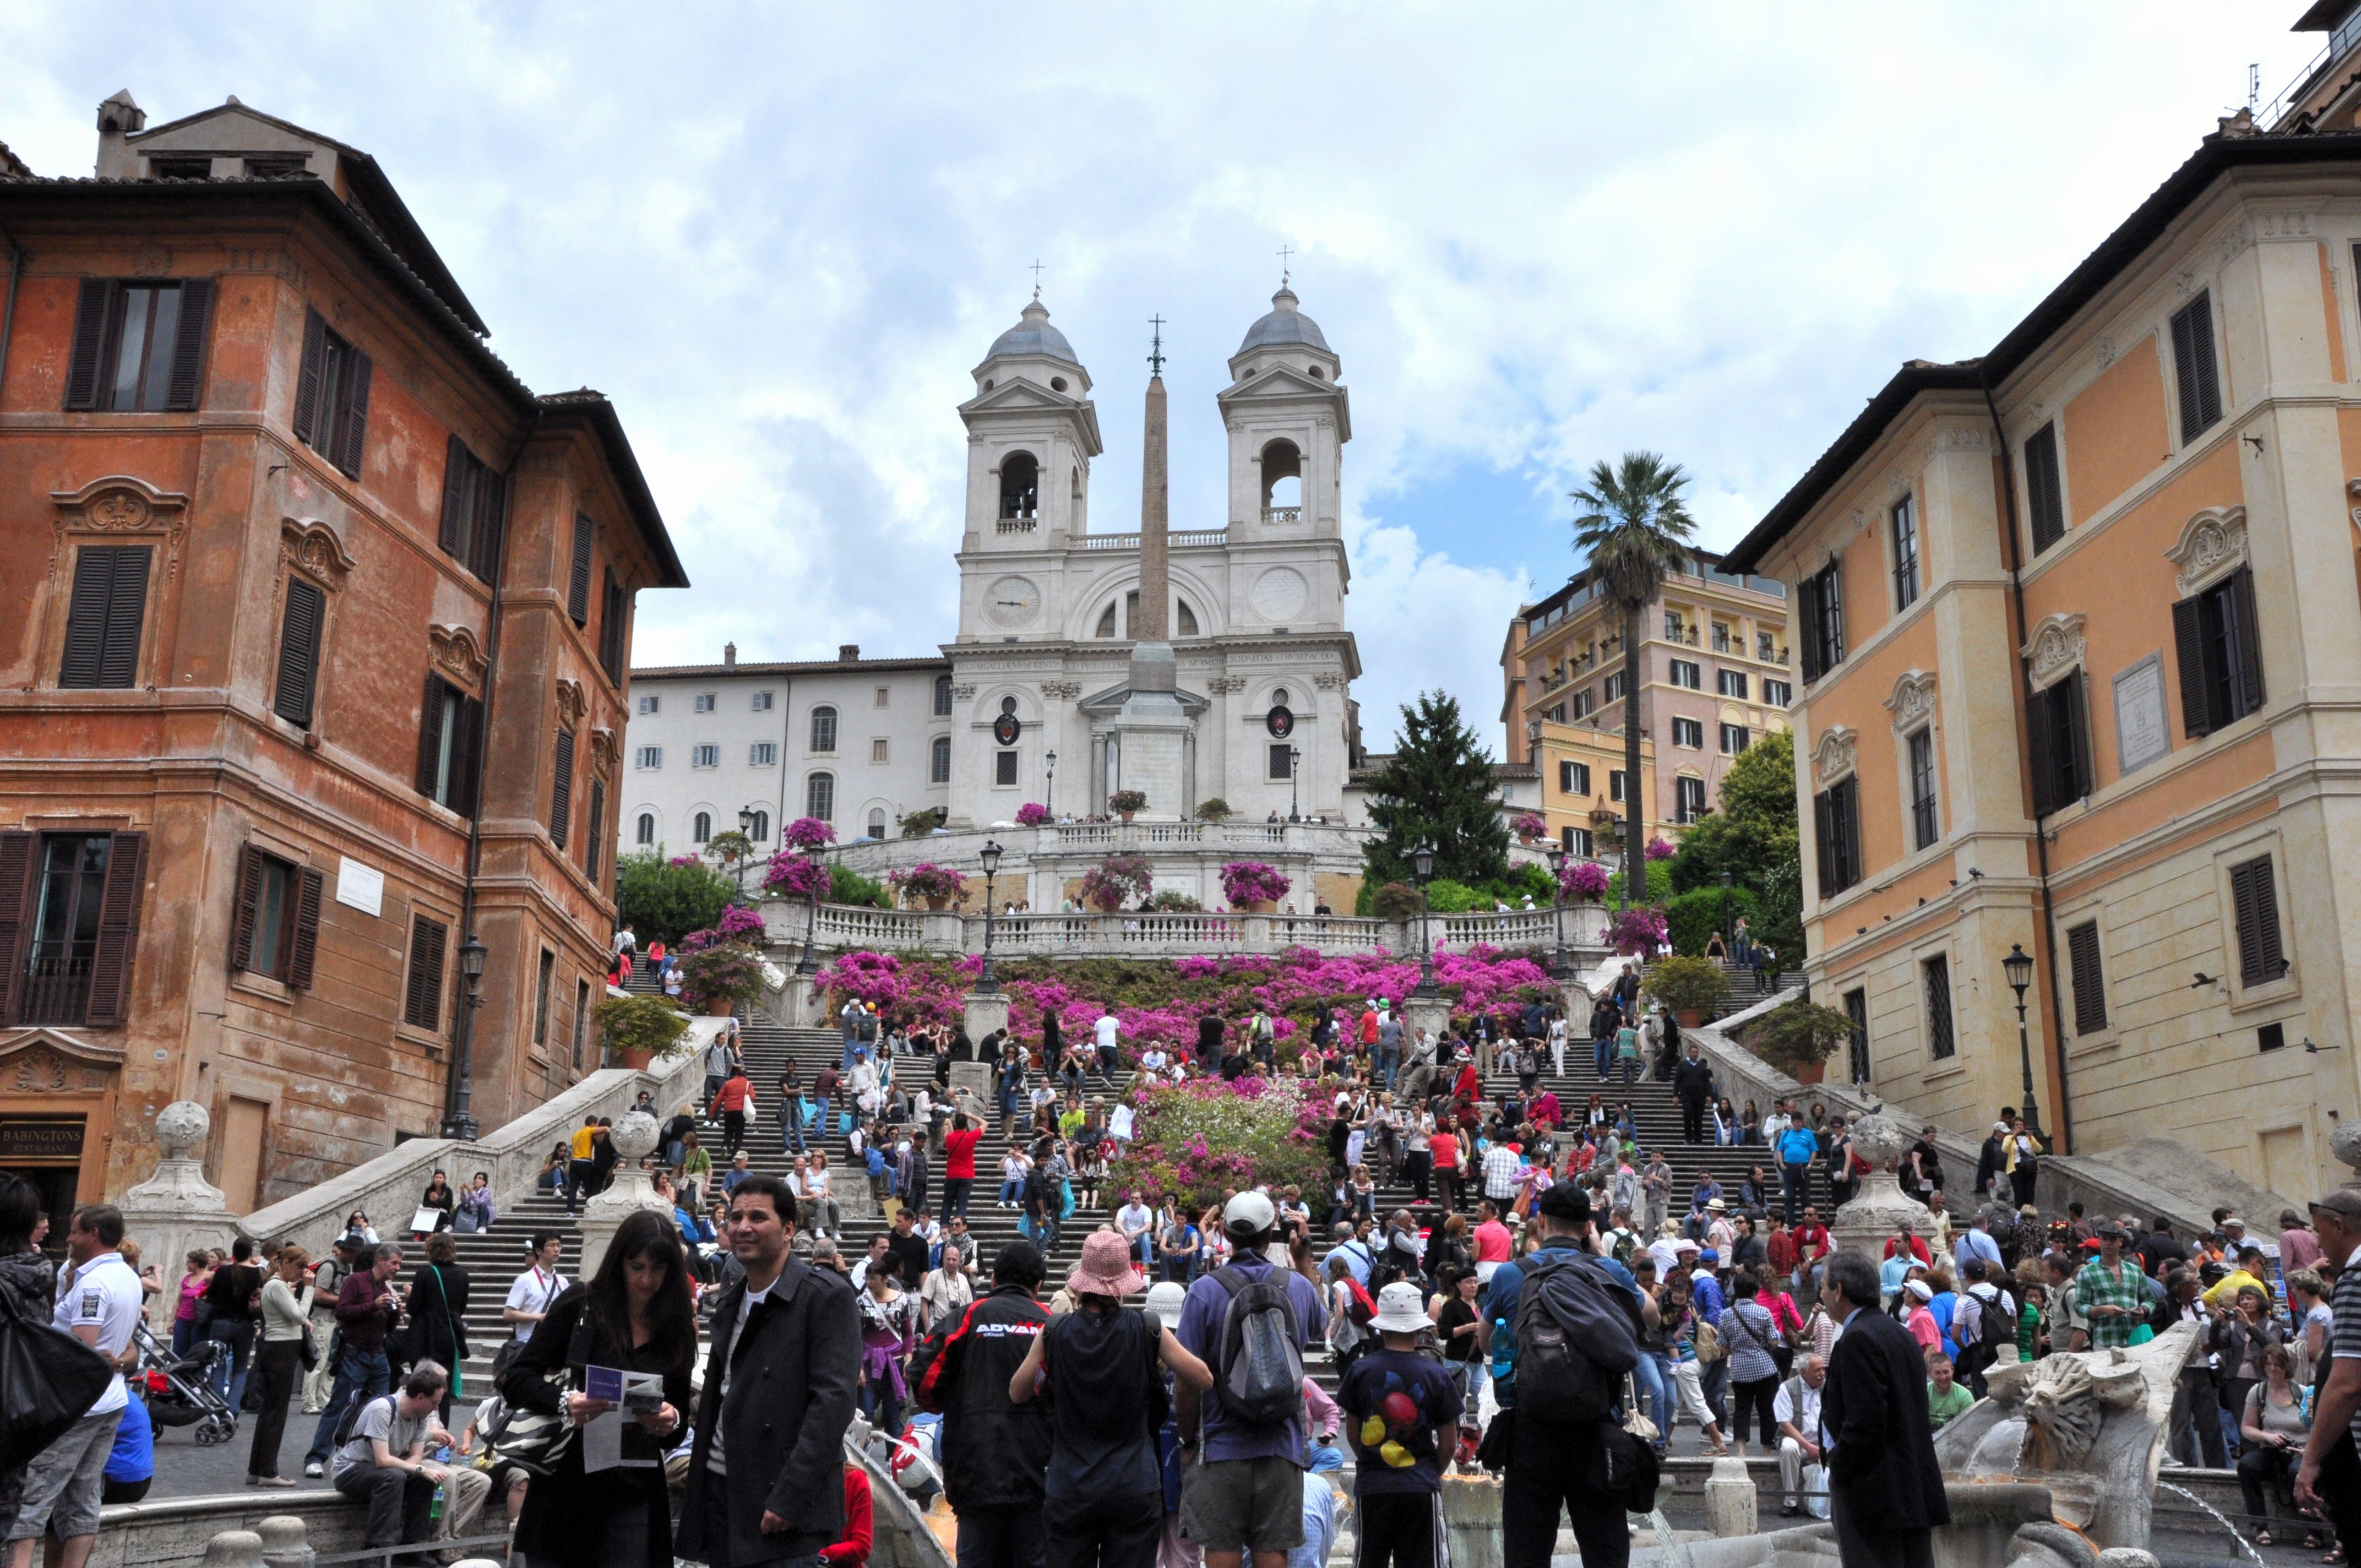 spring festival on the Spanish Steps, Rome, Italy